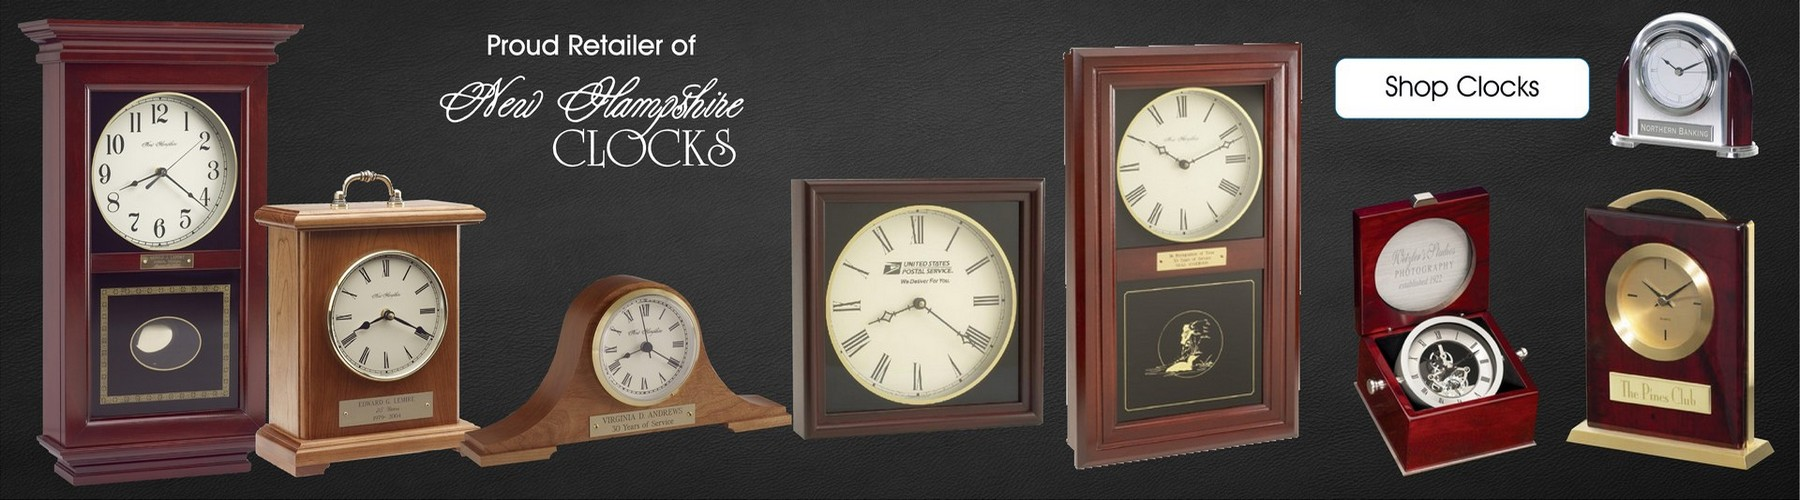 Proud retailer of New Hampshire Clocks - shop clocks